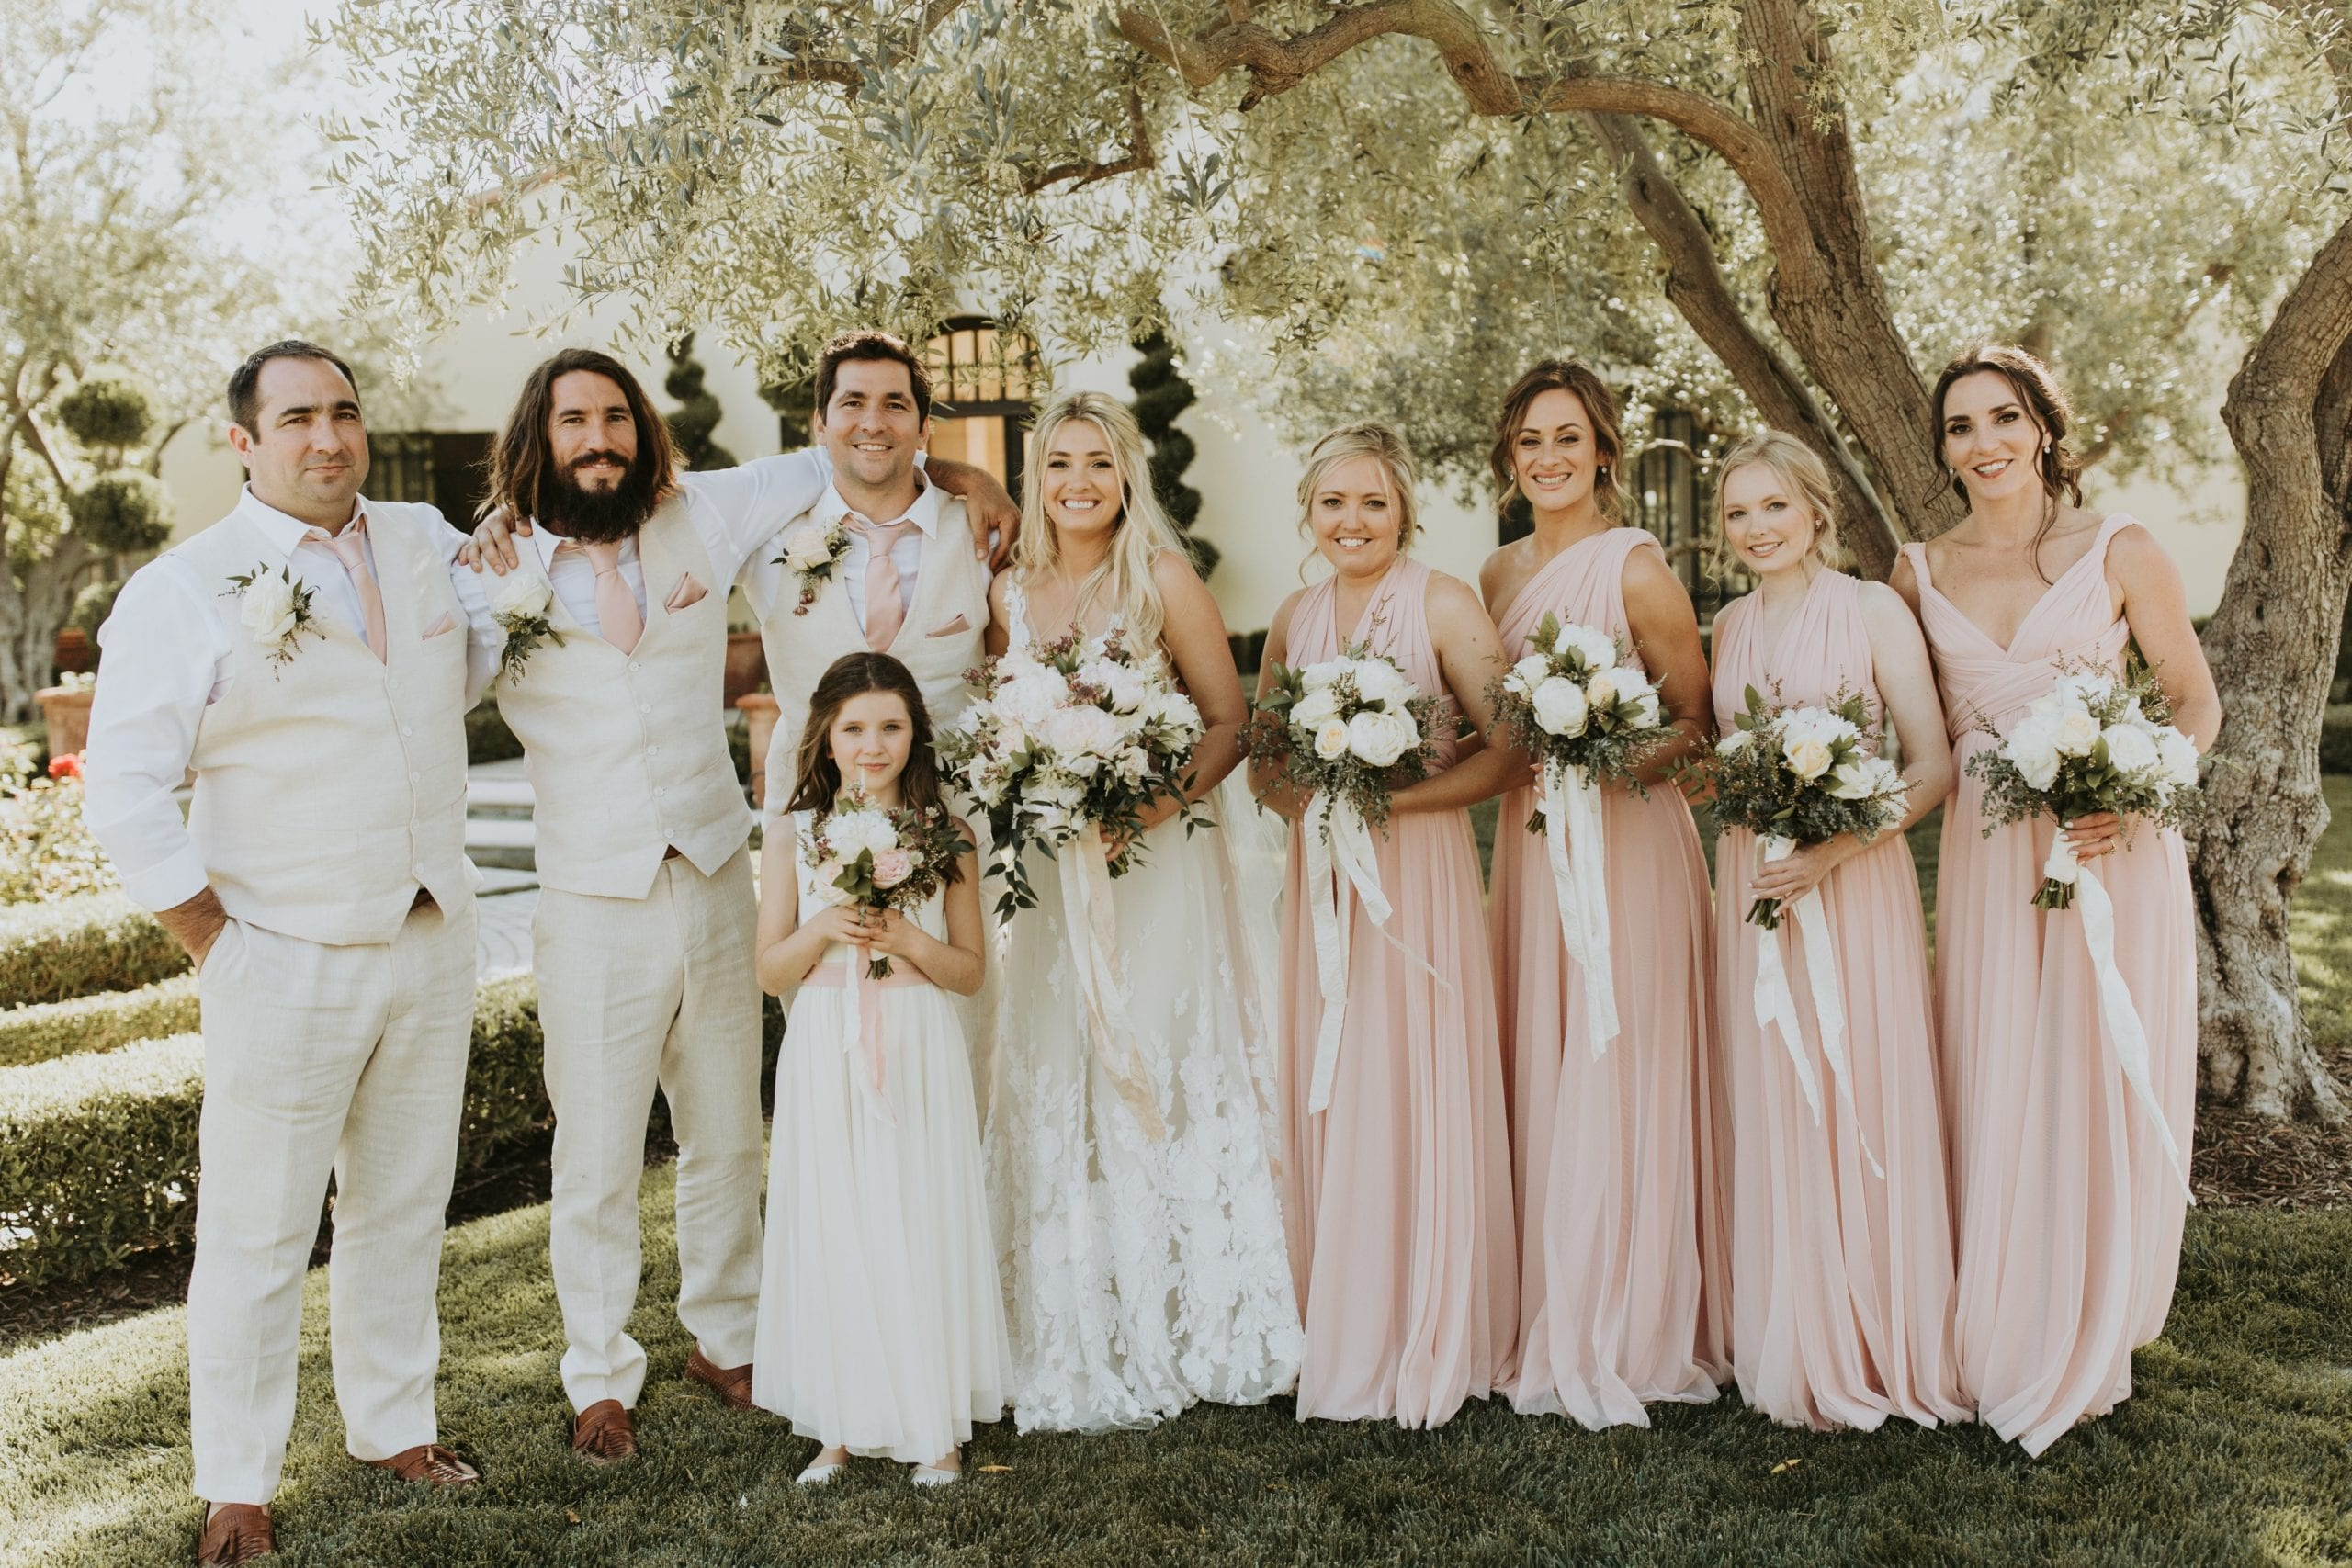 Real Weddings | Vinka Design | Real Brides Wearing Vinka Gowns | Camille and Aaron with bridal party under trees